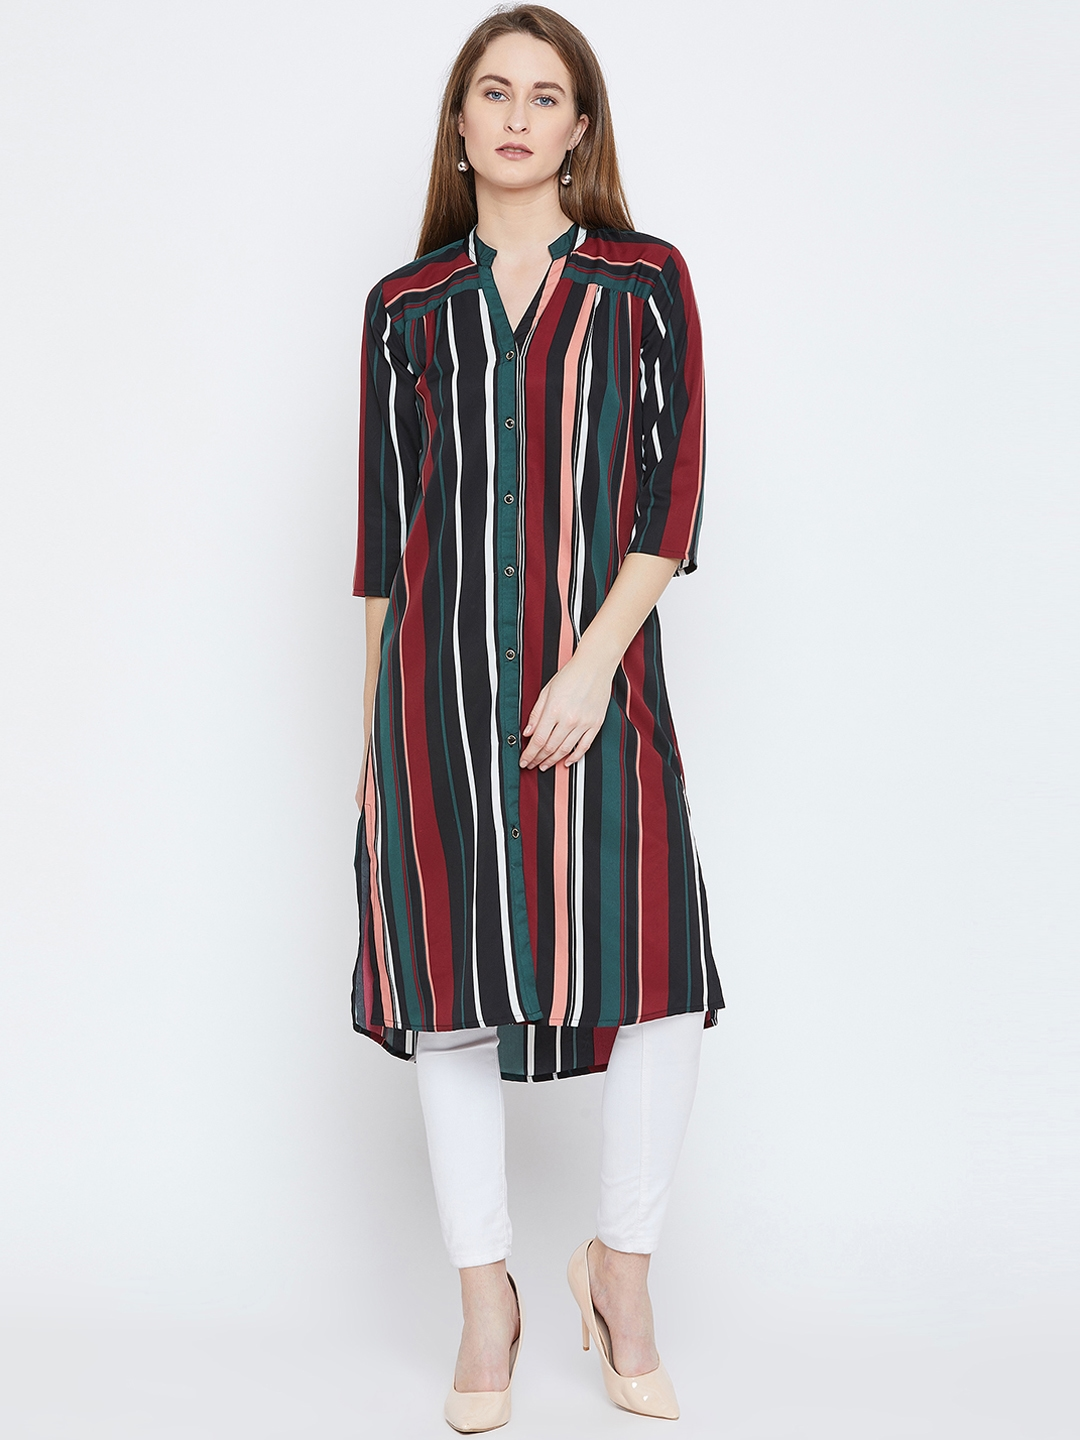 Ruhaans Women Multicoloured Striped Hight Low Tunic